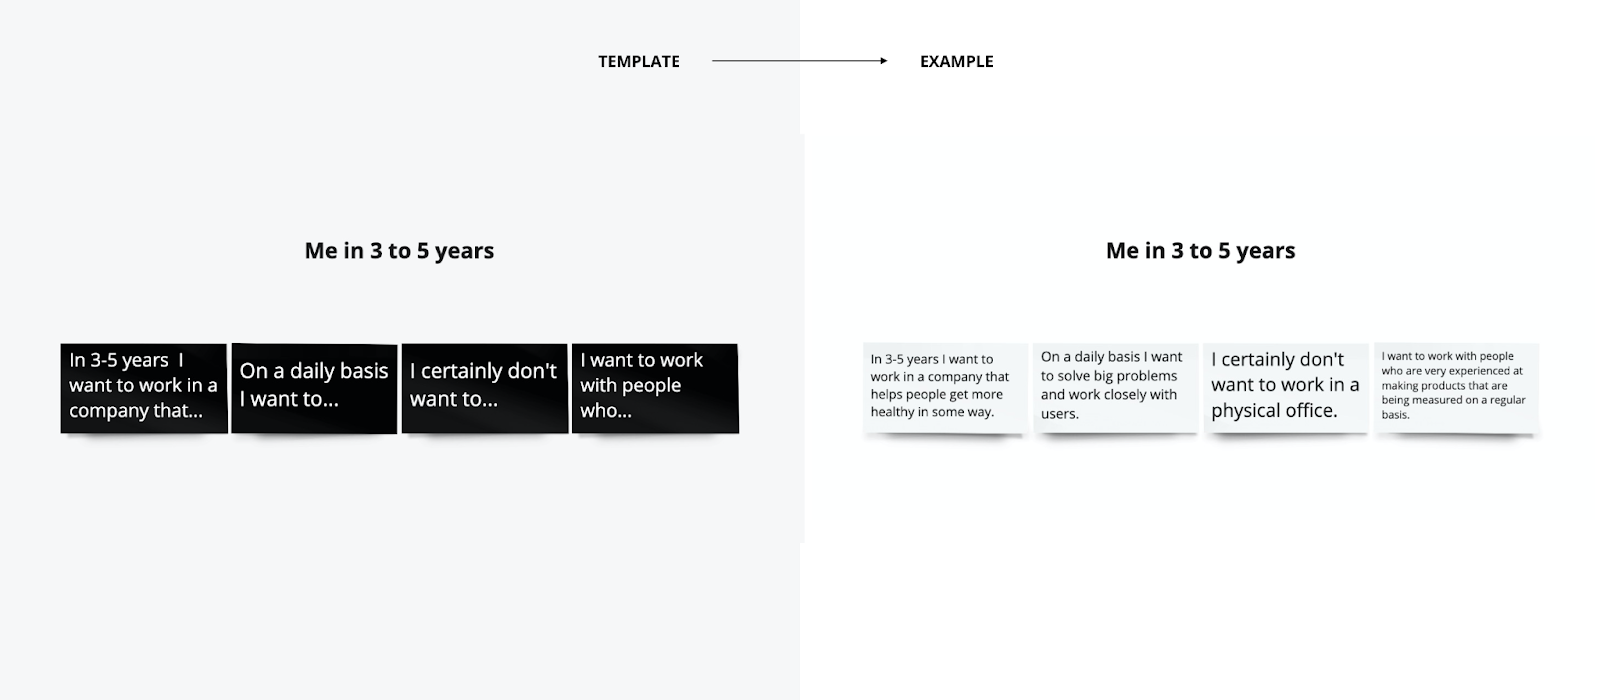 An example of outlining your strategic career goal